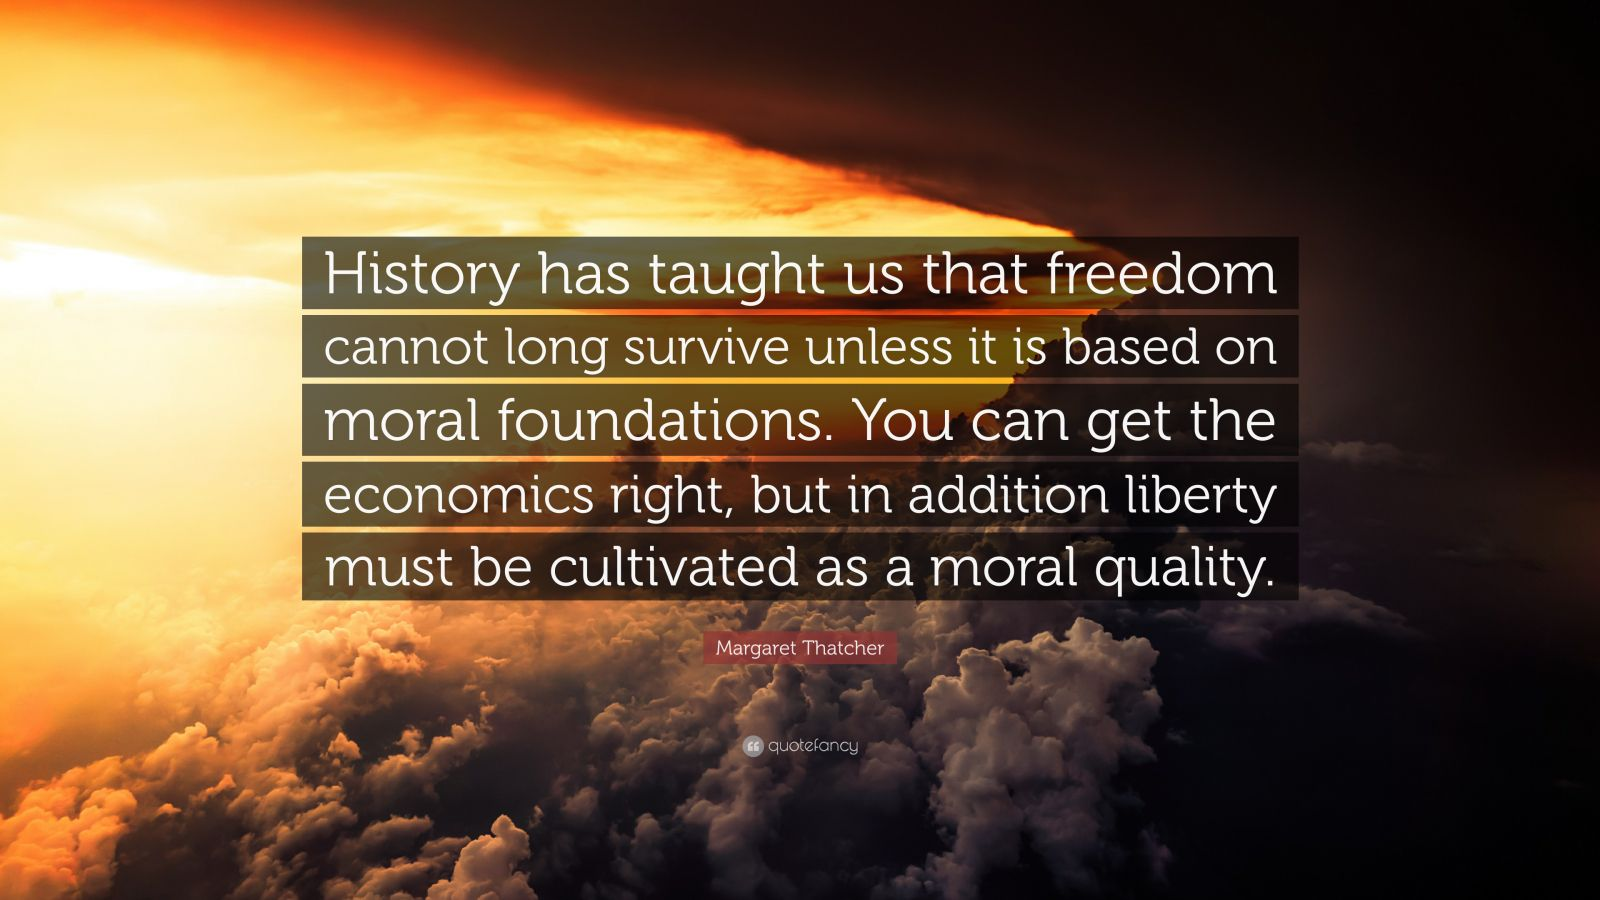 """Margaret Thatcher Quote: """"History has taught us that freedom cannot long survive unless it is based on moral foundations. You can get the economics right, but in addition liberty must be cultivated as a moral quality."""""""